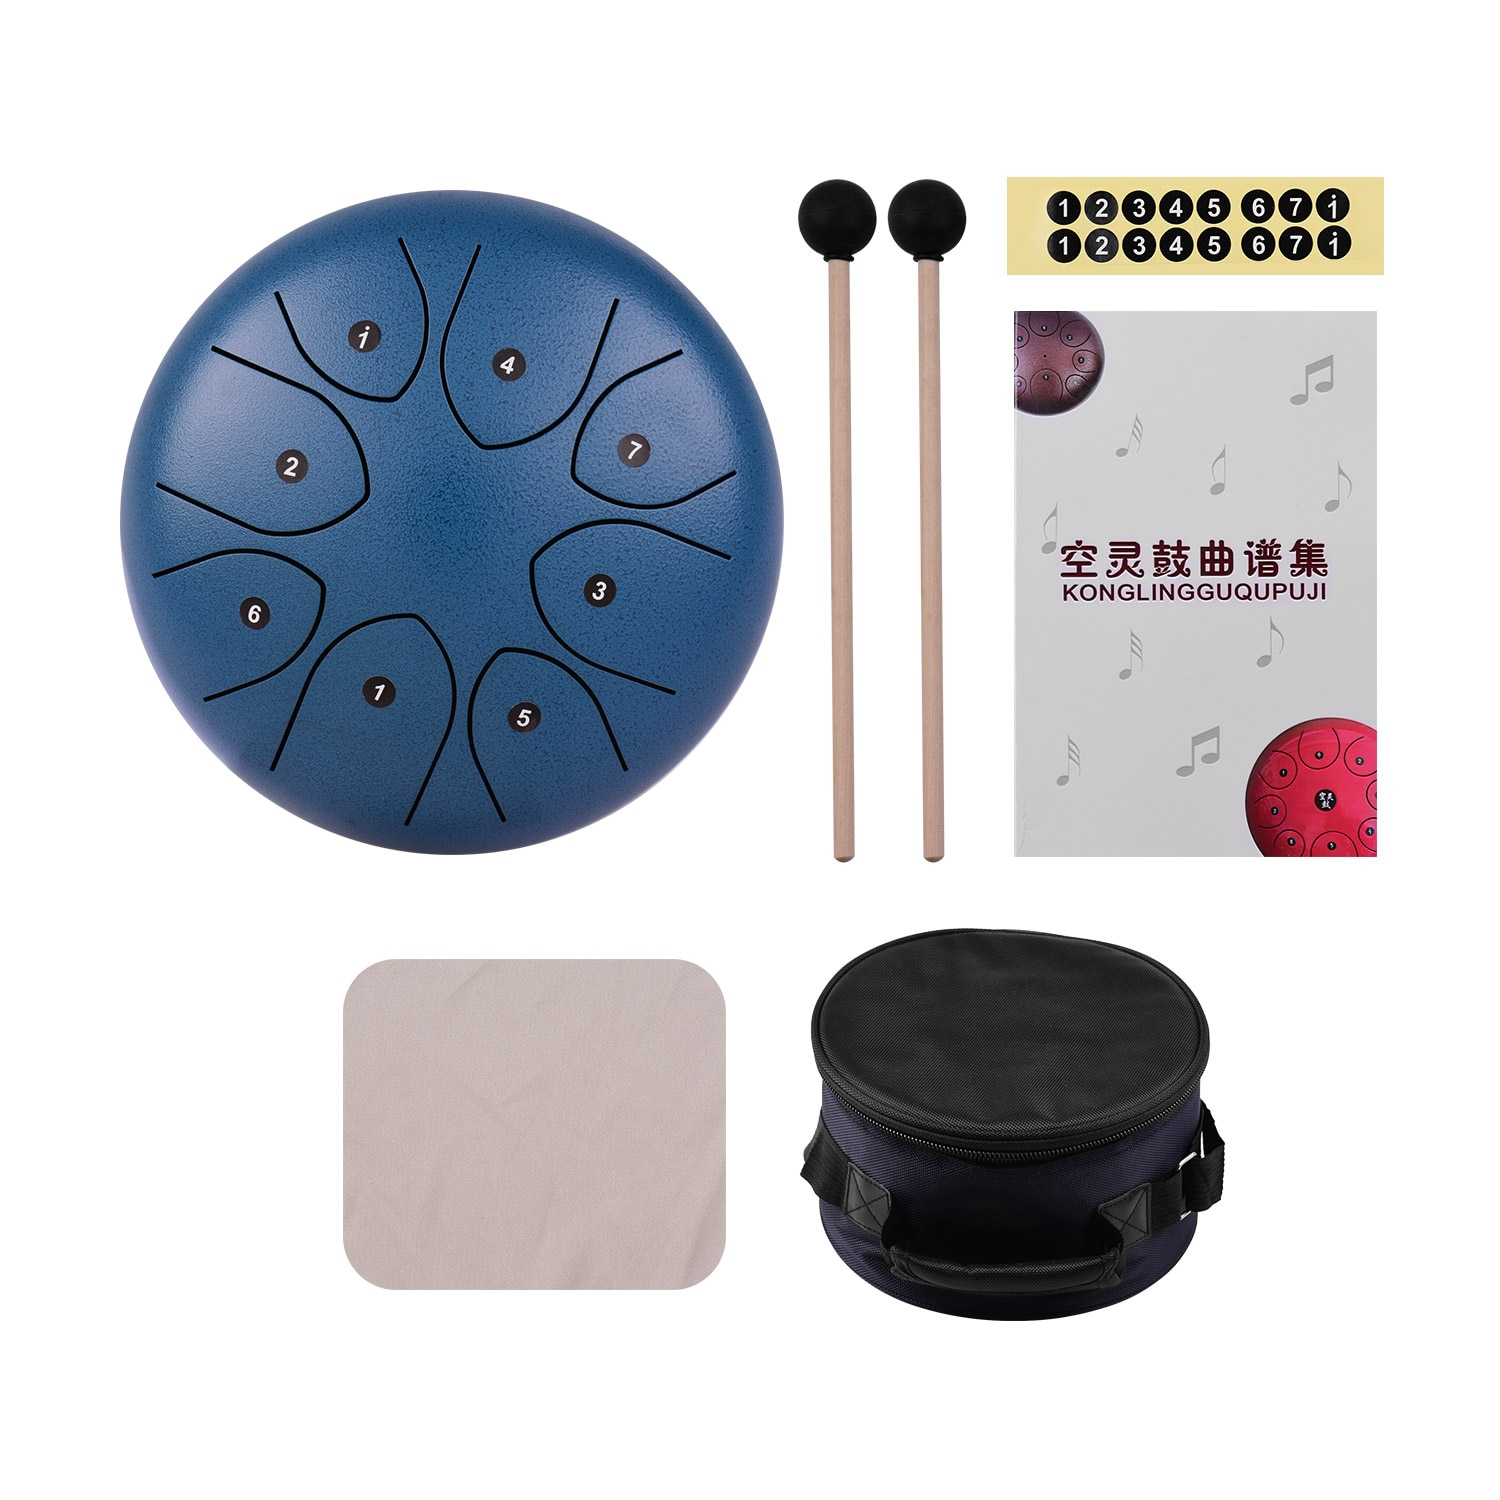 8 Inch 8-Tone Steel Tongue Drum Hand Pan Drum Percussion Instrument with Drum Mallets Carry Bag Music Book Sticker Wipe Cloth